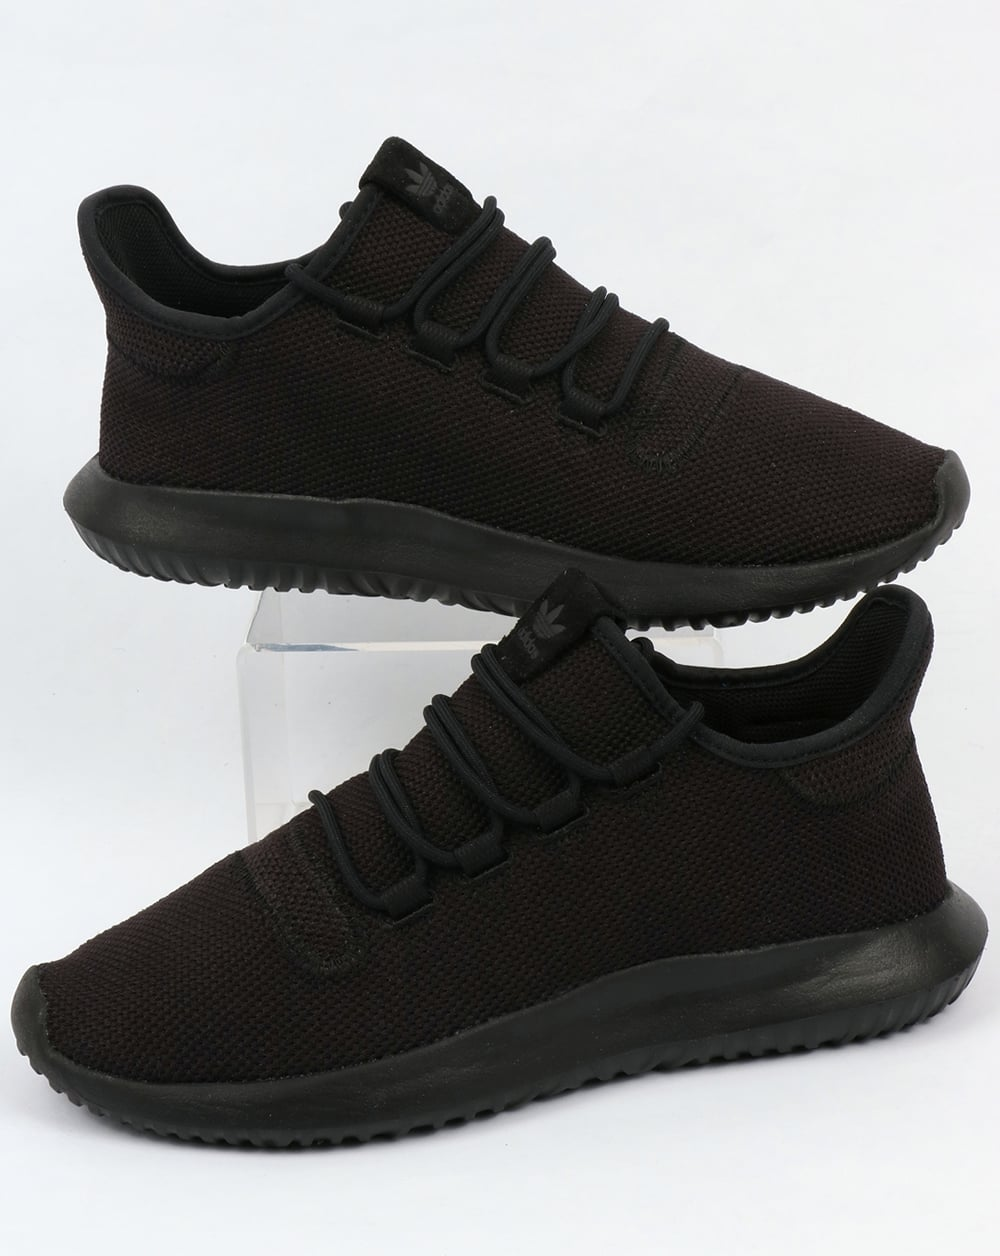 new styles 266cc 48ed3 Adidas Tubular Shadow Trainers Black